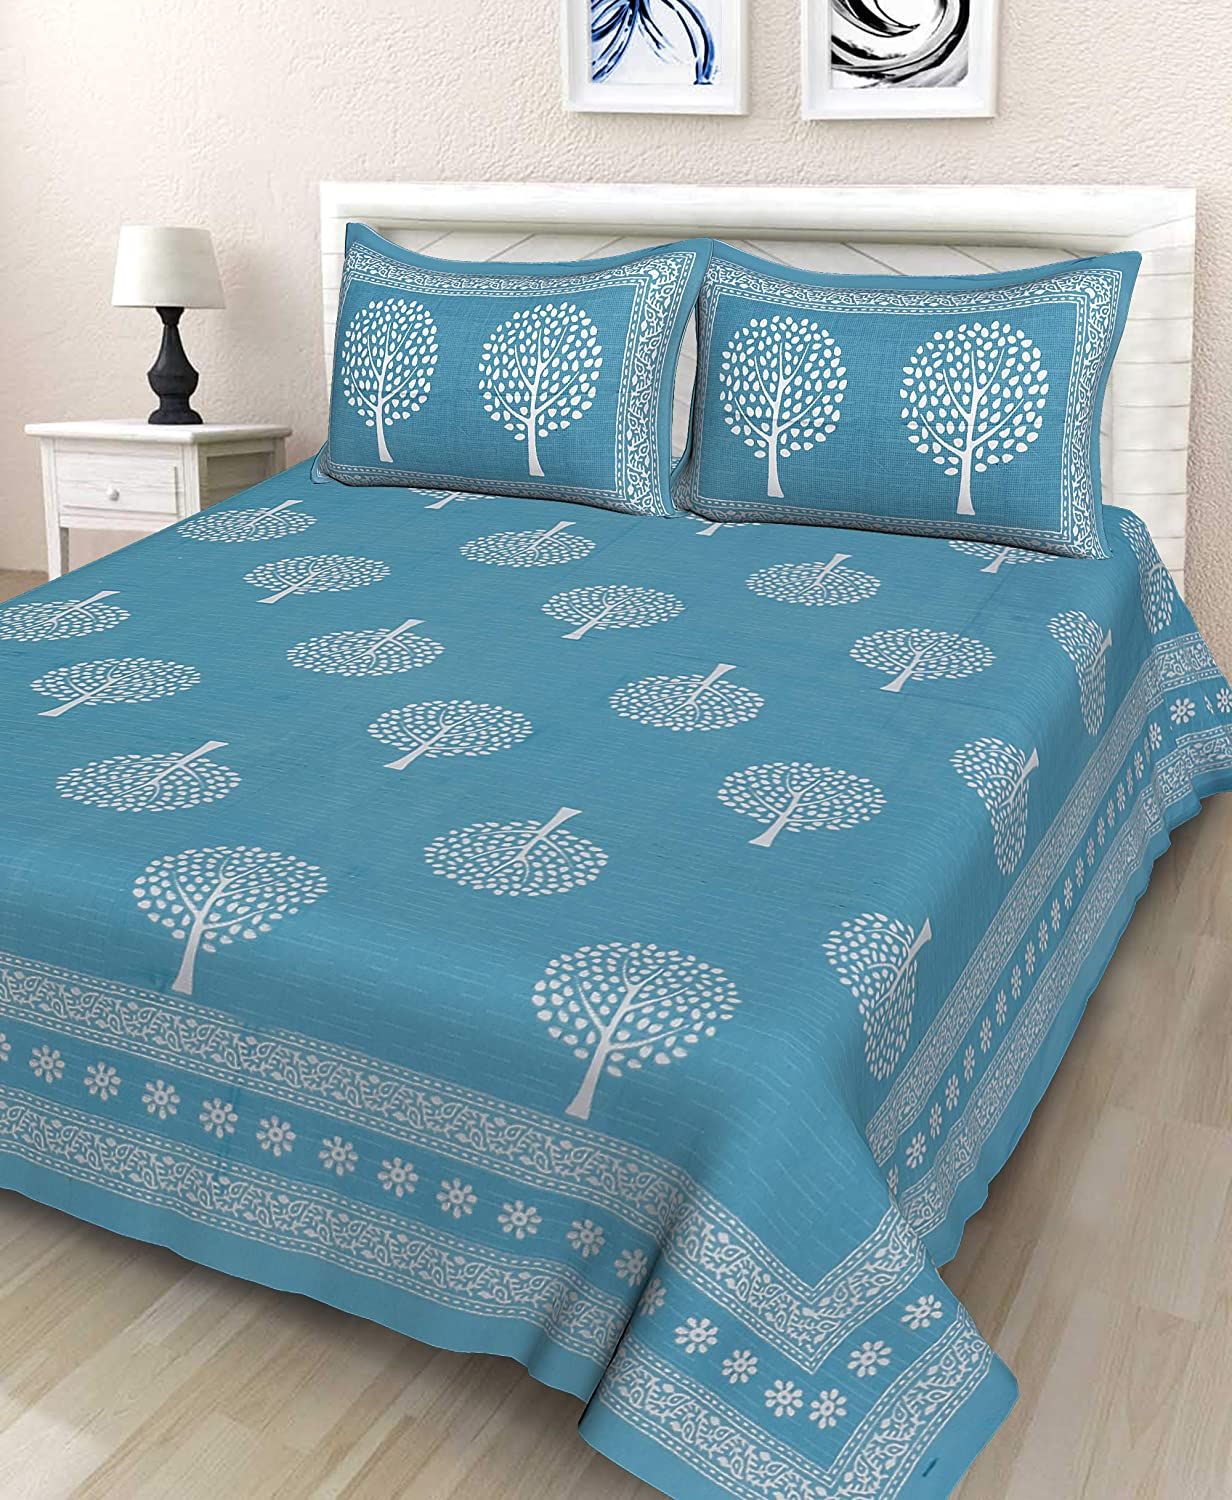 Indian Rajasthani Handmade New Royal Multi Cotton Bed Sheet 2 Pillow Covers Sets